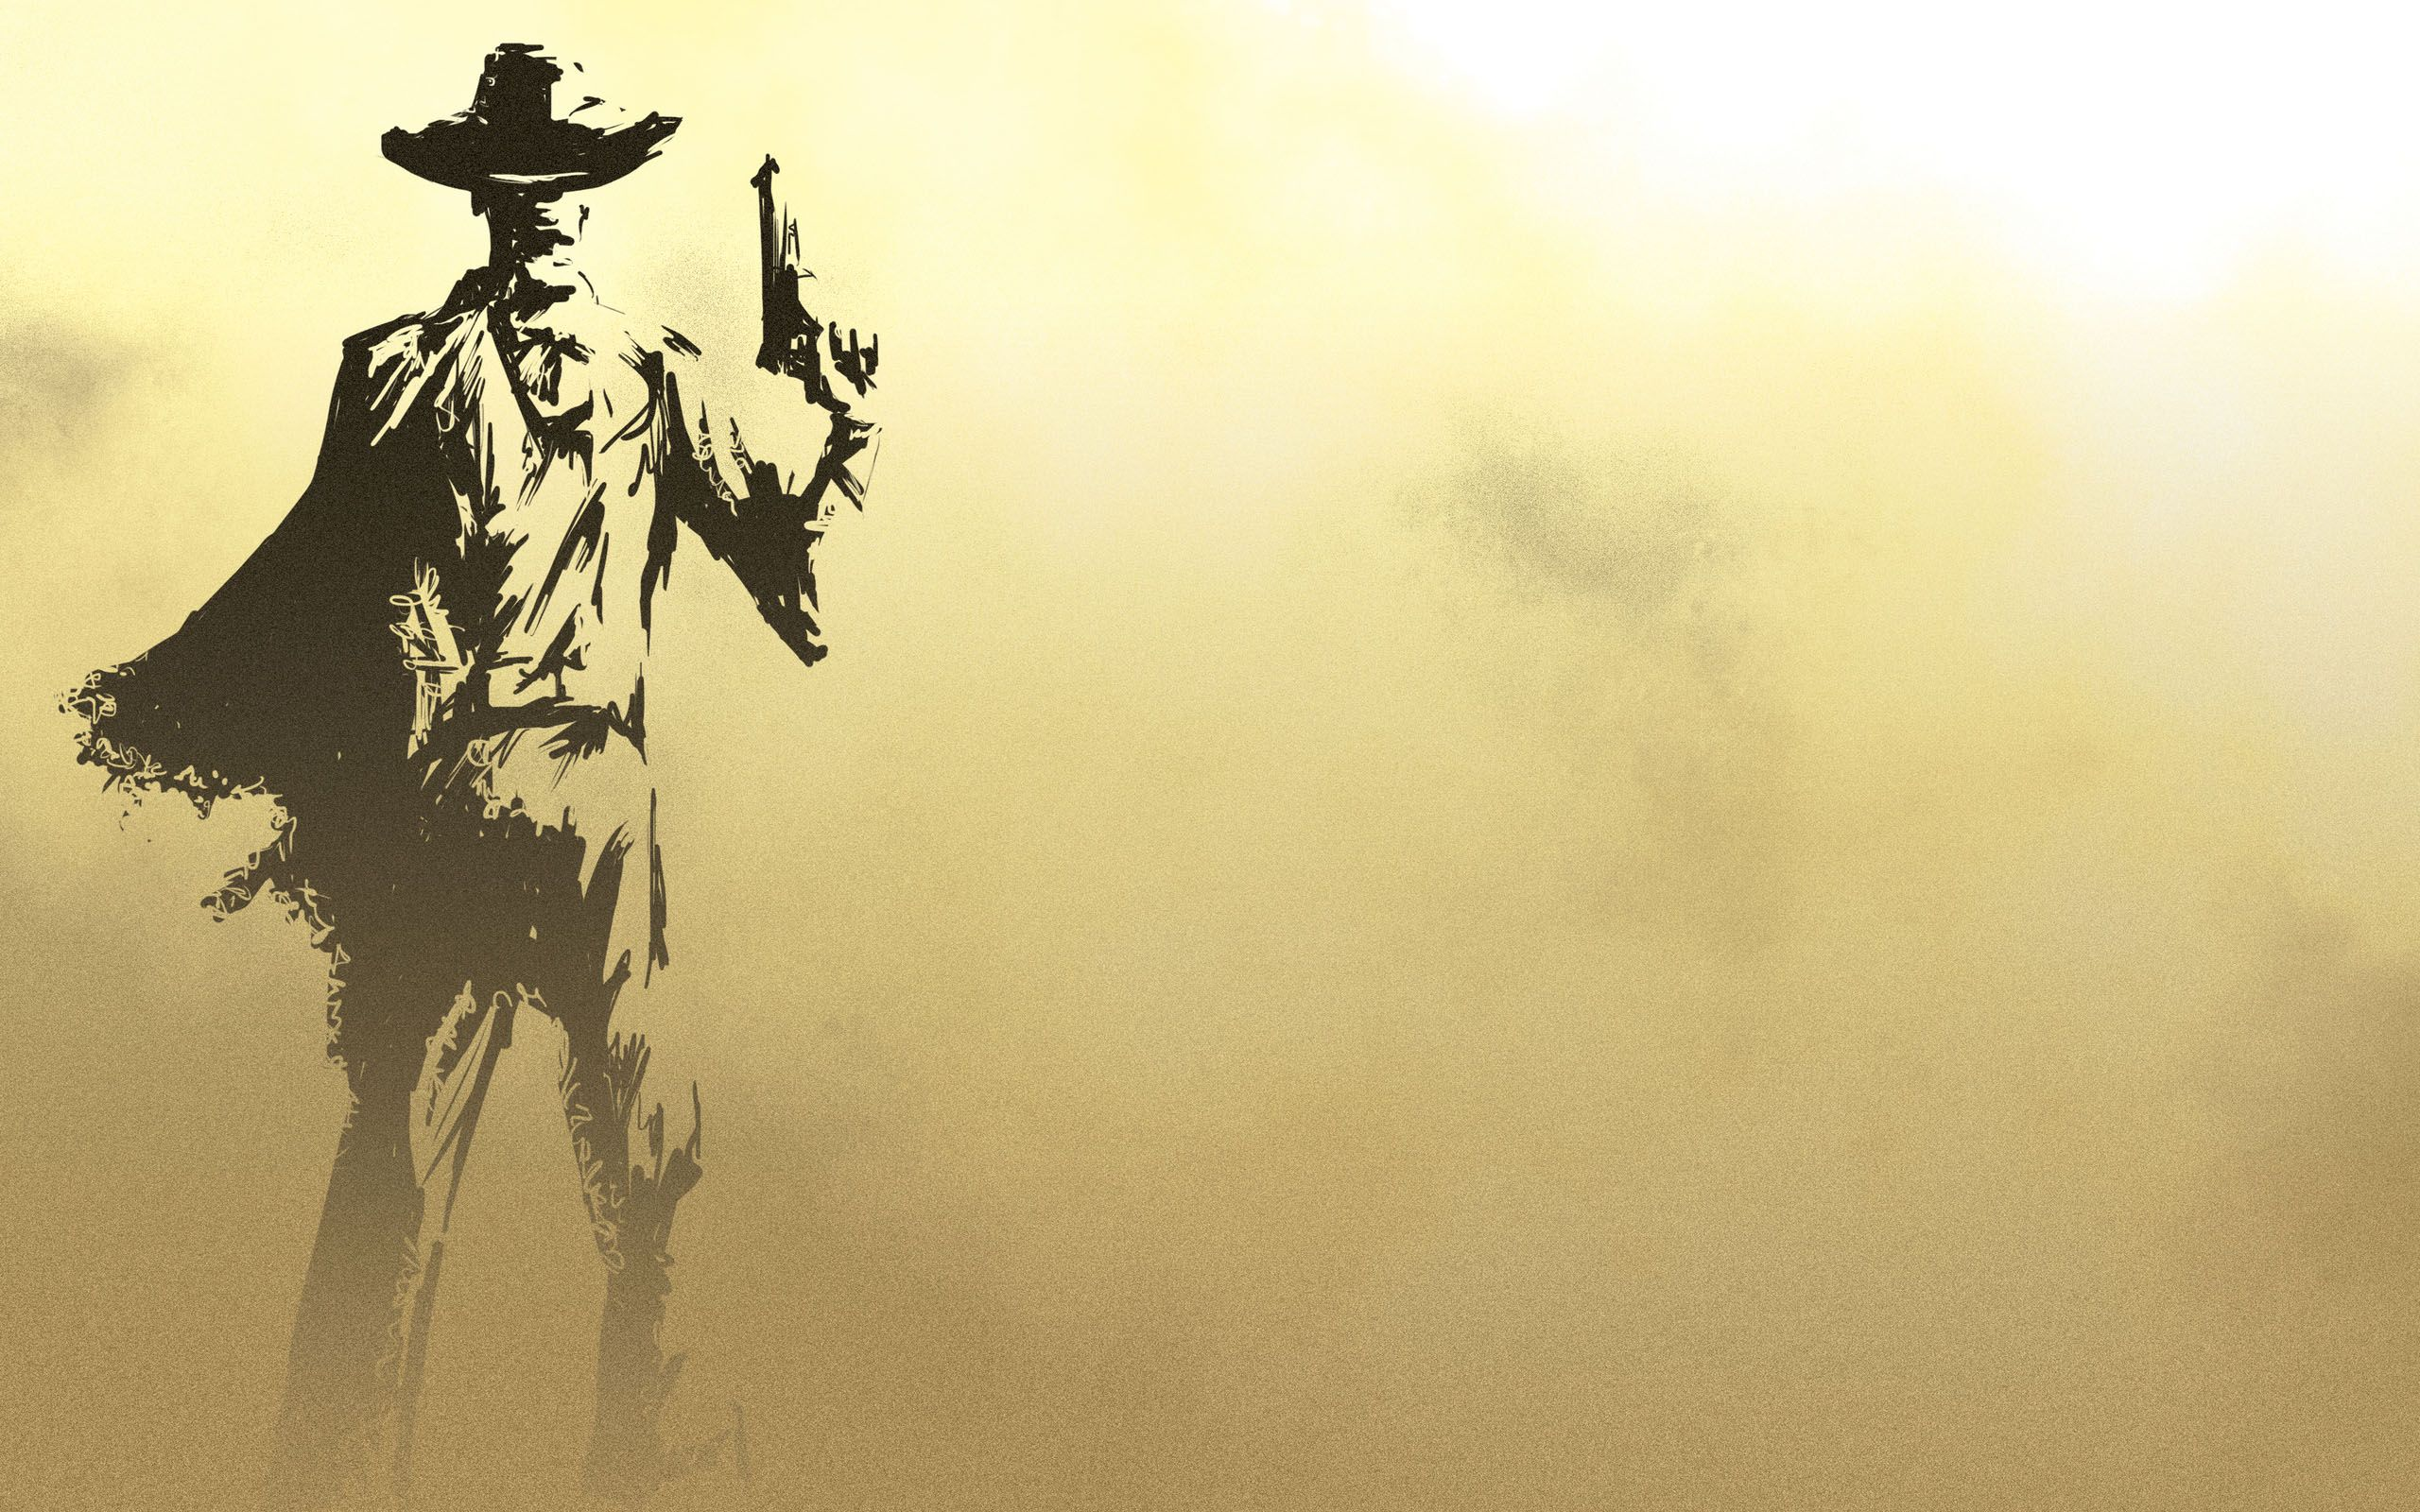 Western Wallpaper Cowboy Pictures Widescreen Wallpaper Fantasy Concept Art